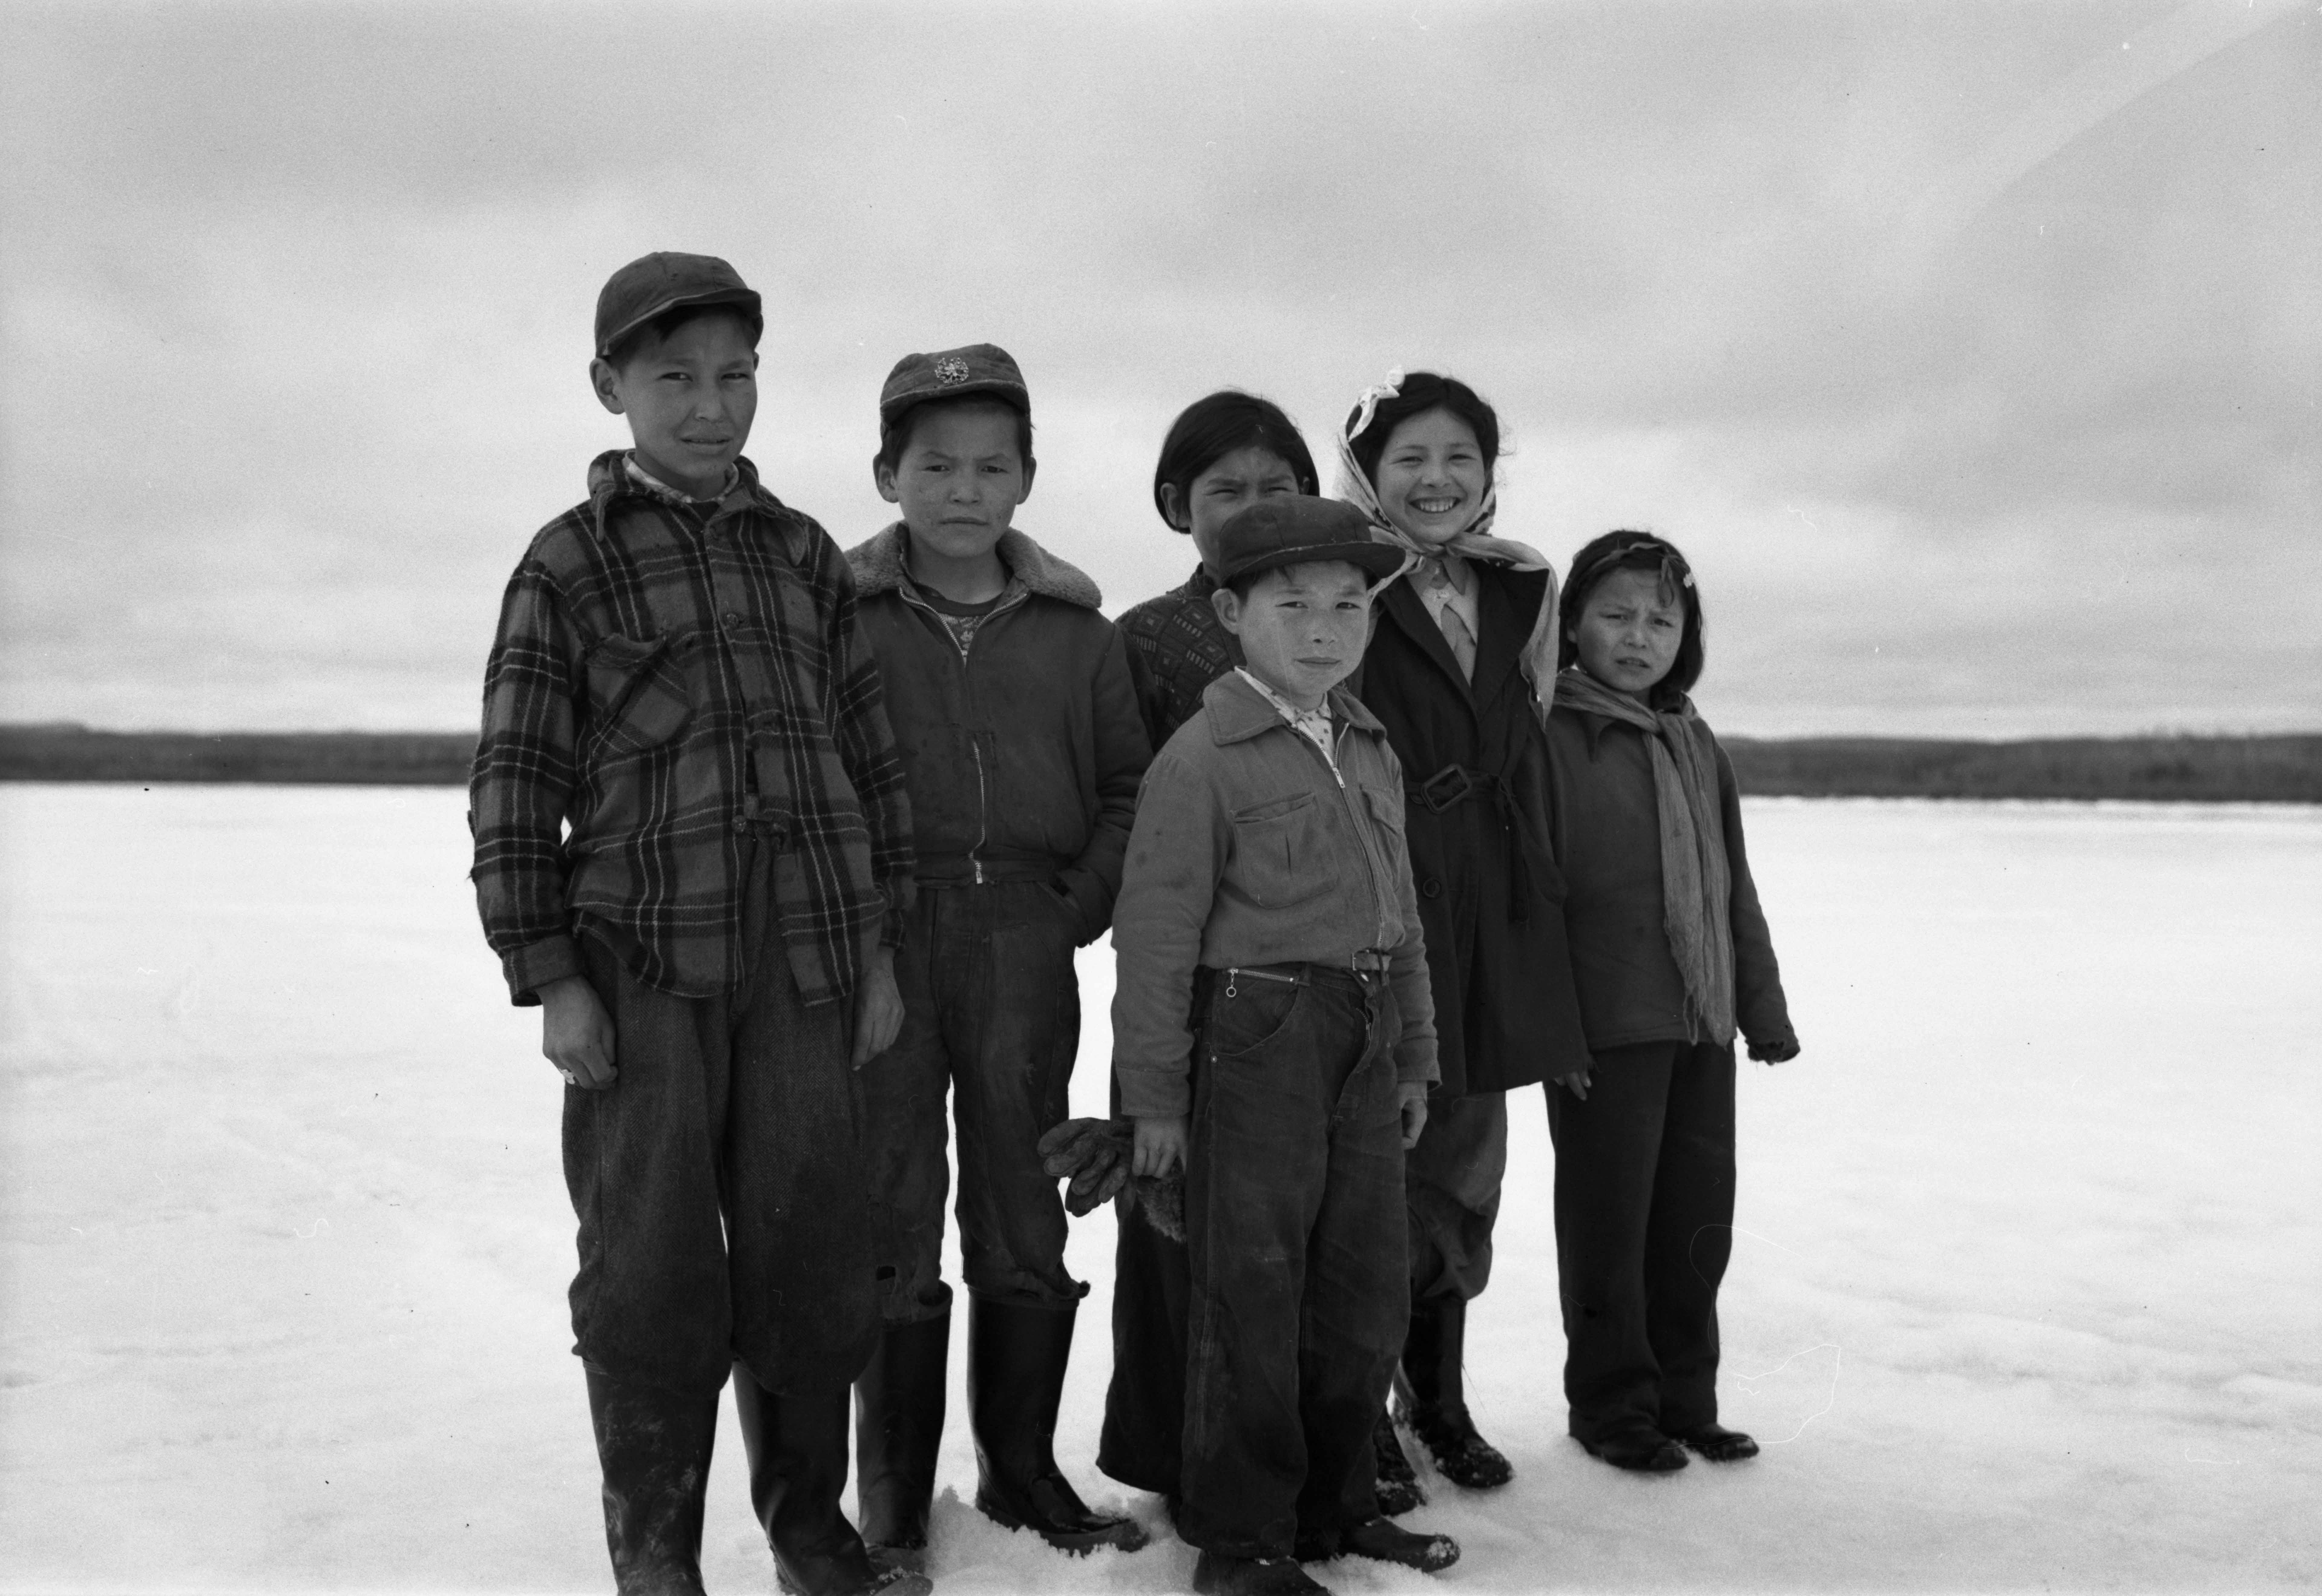 Five First Nations children standing on the ice/snow.